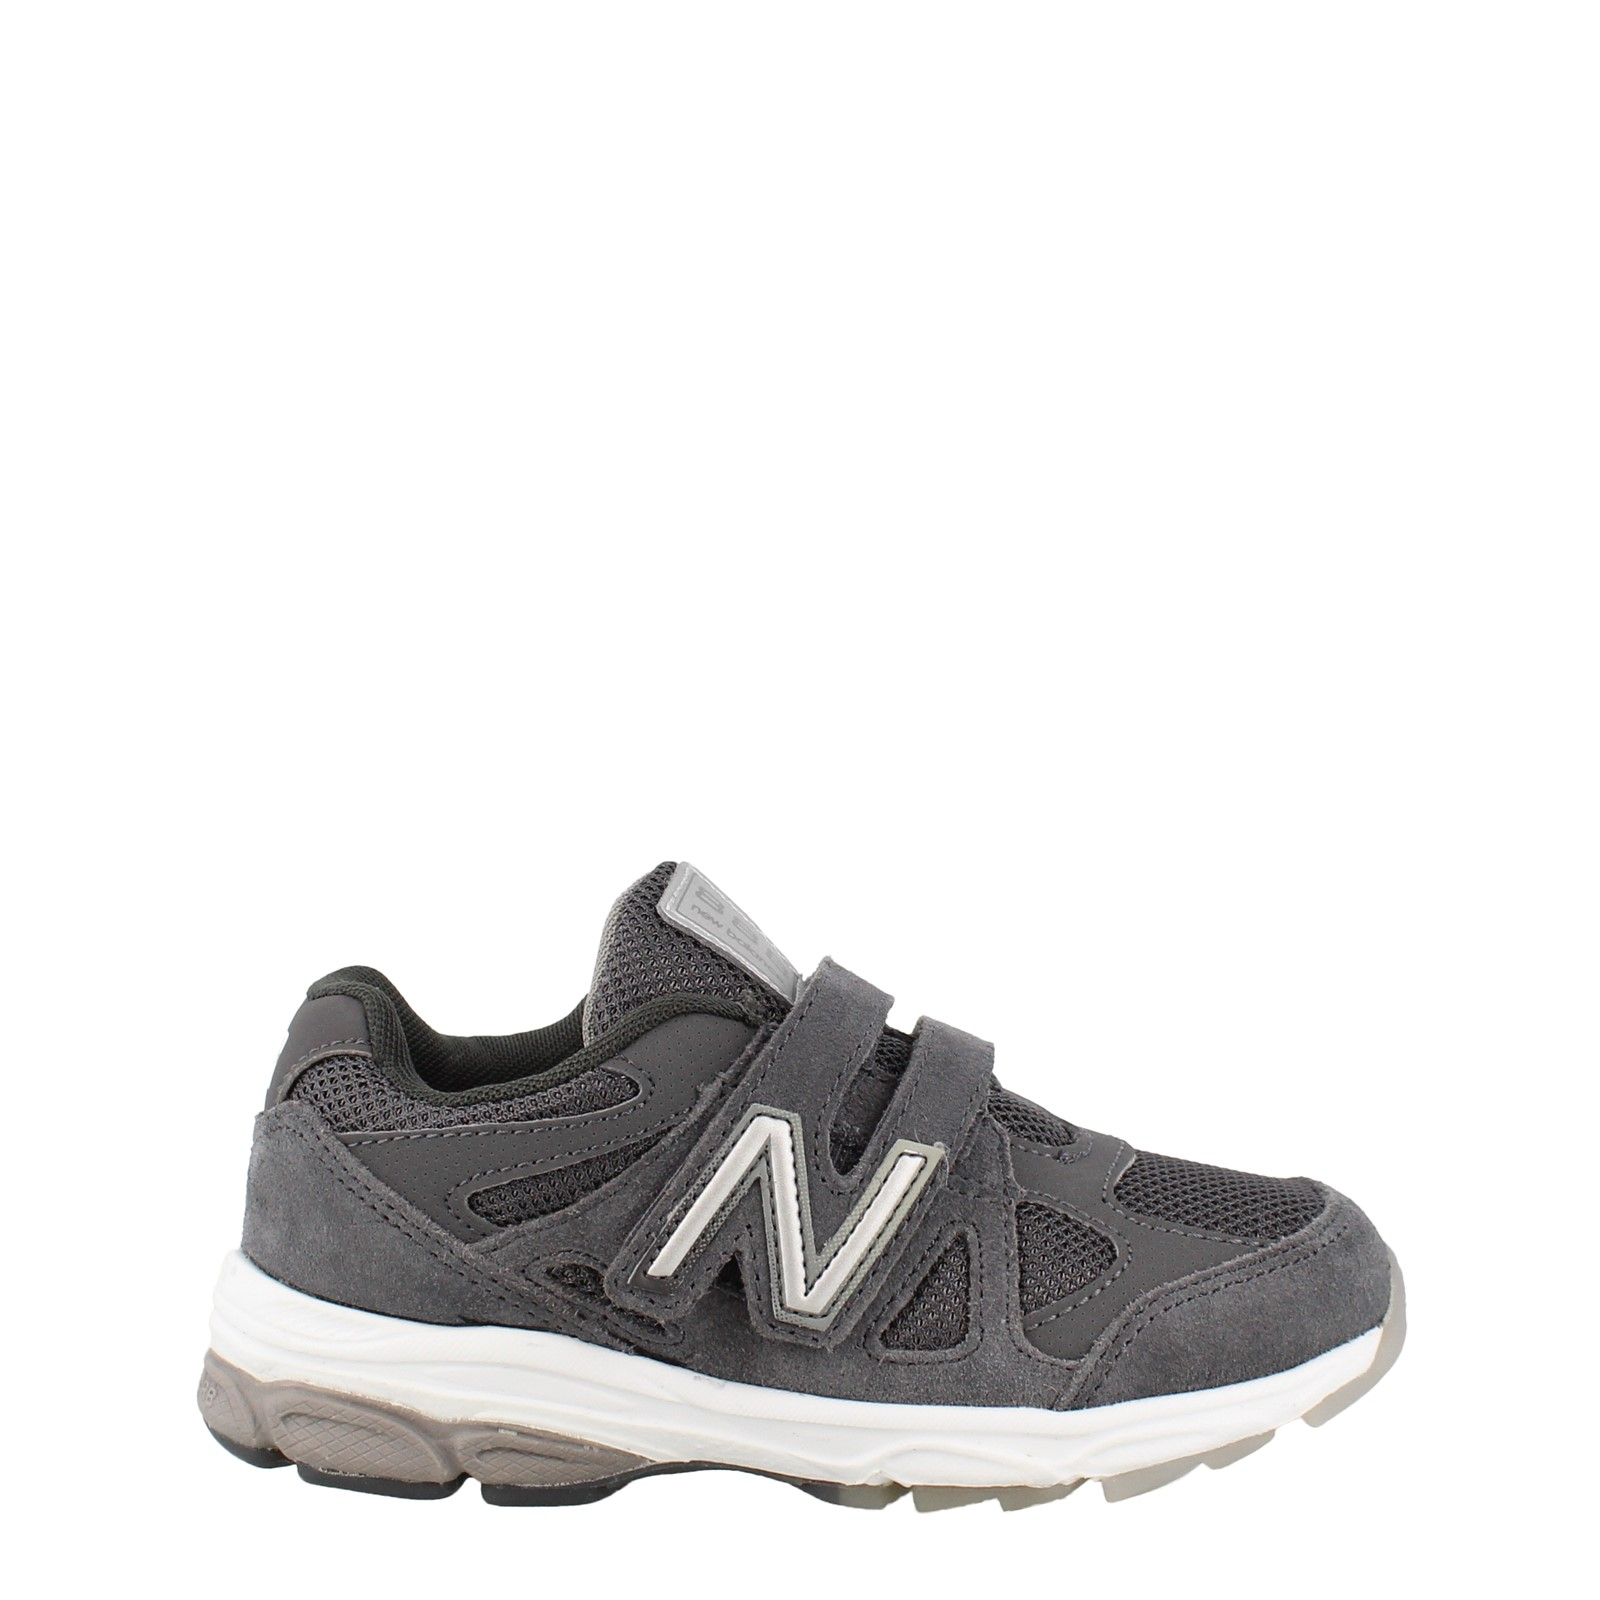 Boy's New Balance, 888 Hook and Loop Athletic Sneaker